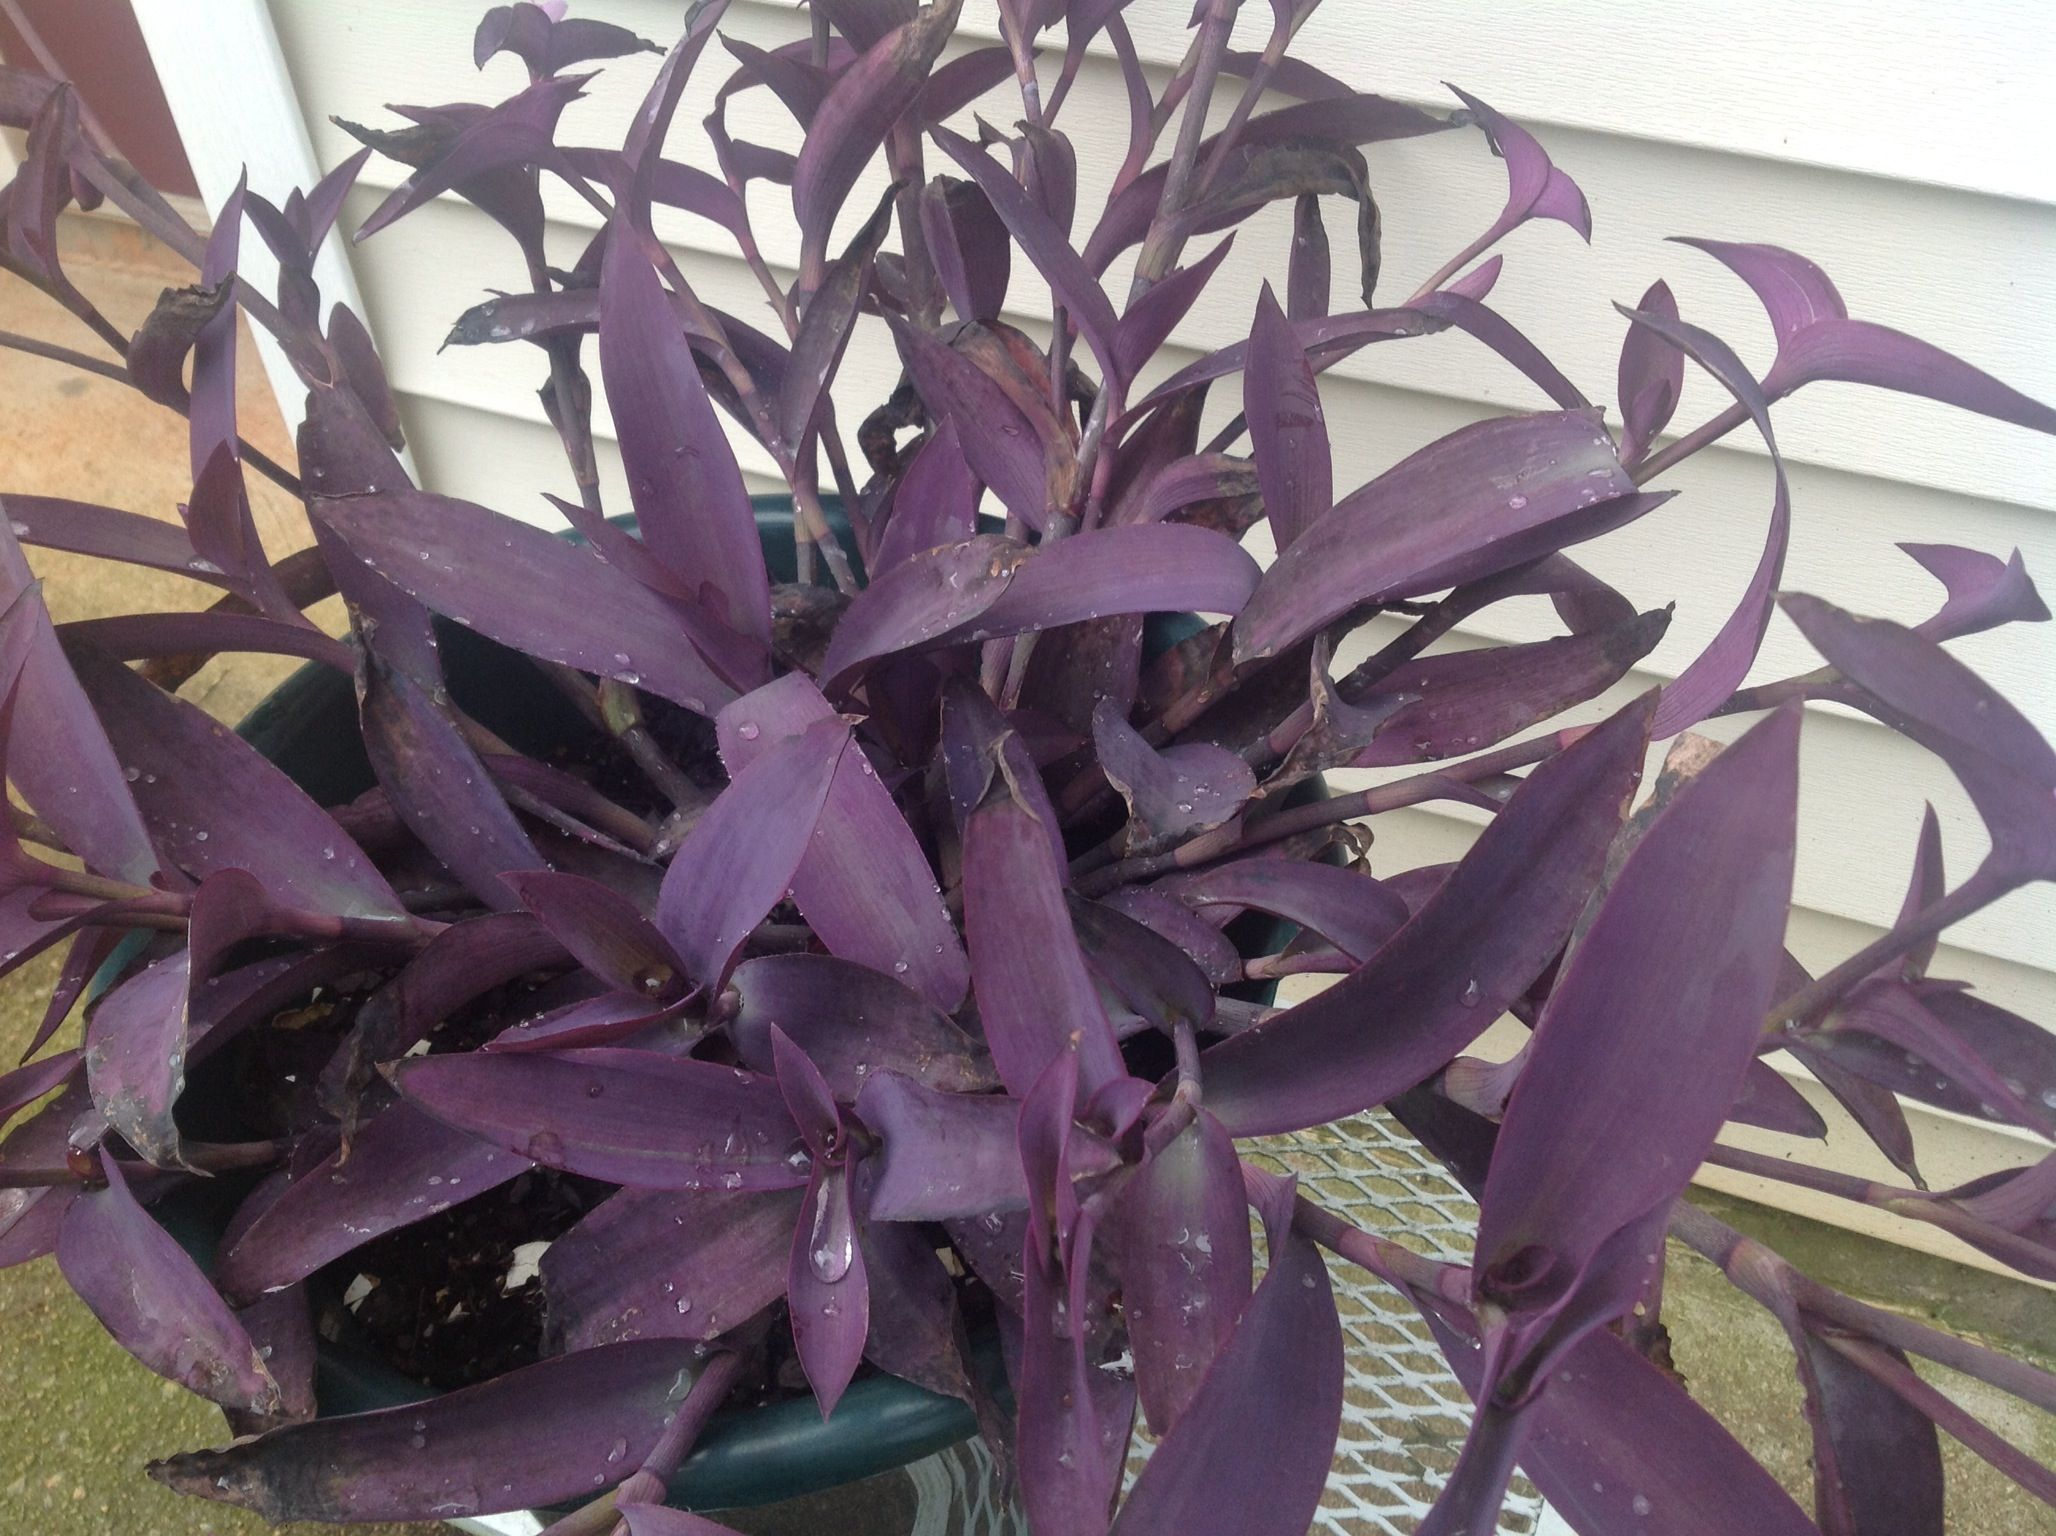 Purple Heart Or Wandering Jew Plant   An Easy To Grow And Propagate Indoor/  Summer Patio Plant  When You Want More, Simply Take A Stem Cutting And Root  It ...